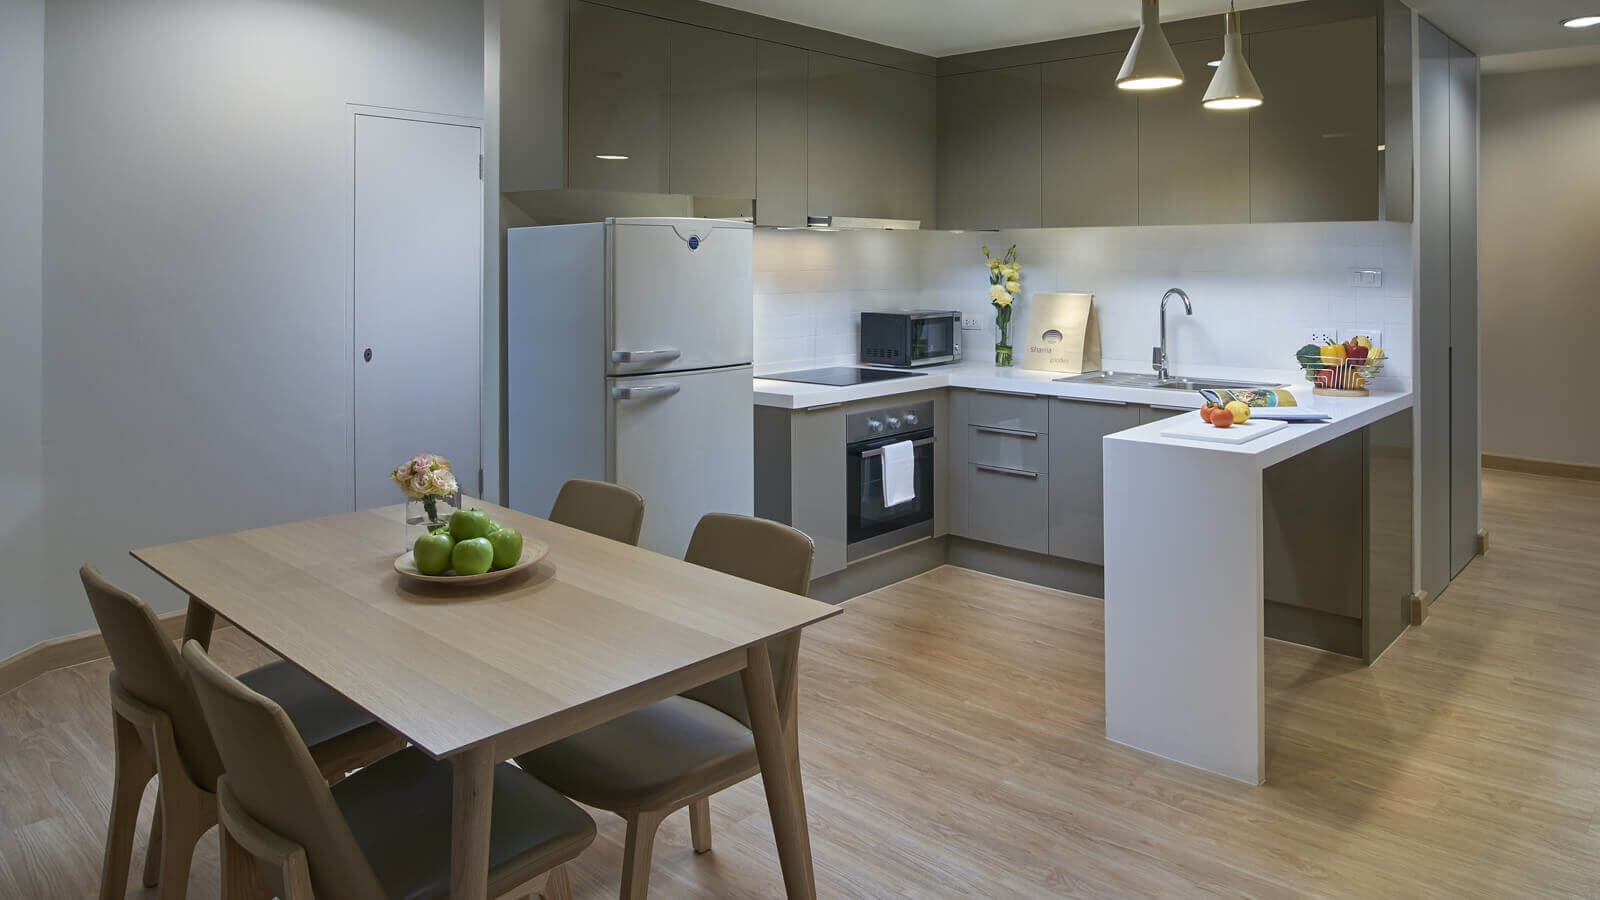 Two Bedroom Deluxe - Kitchen and dining area